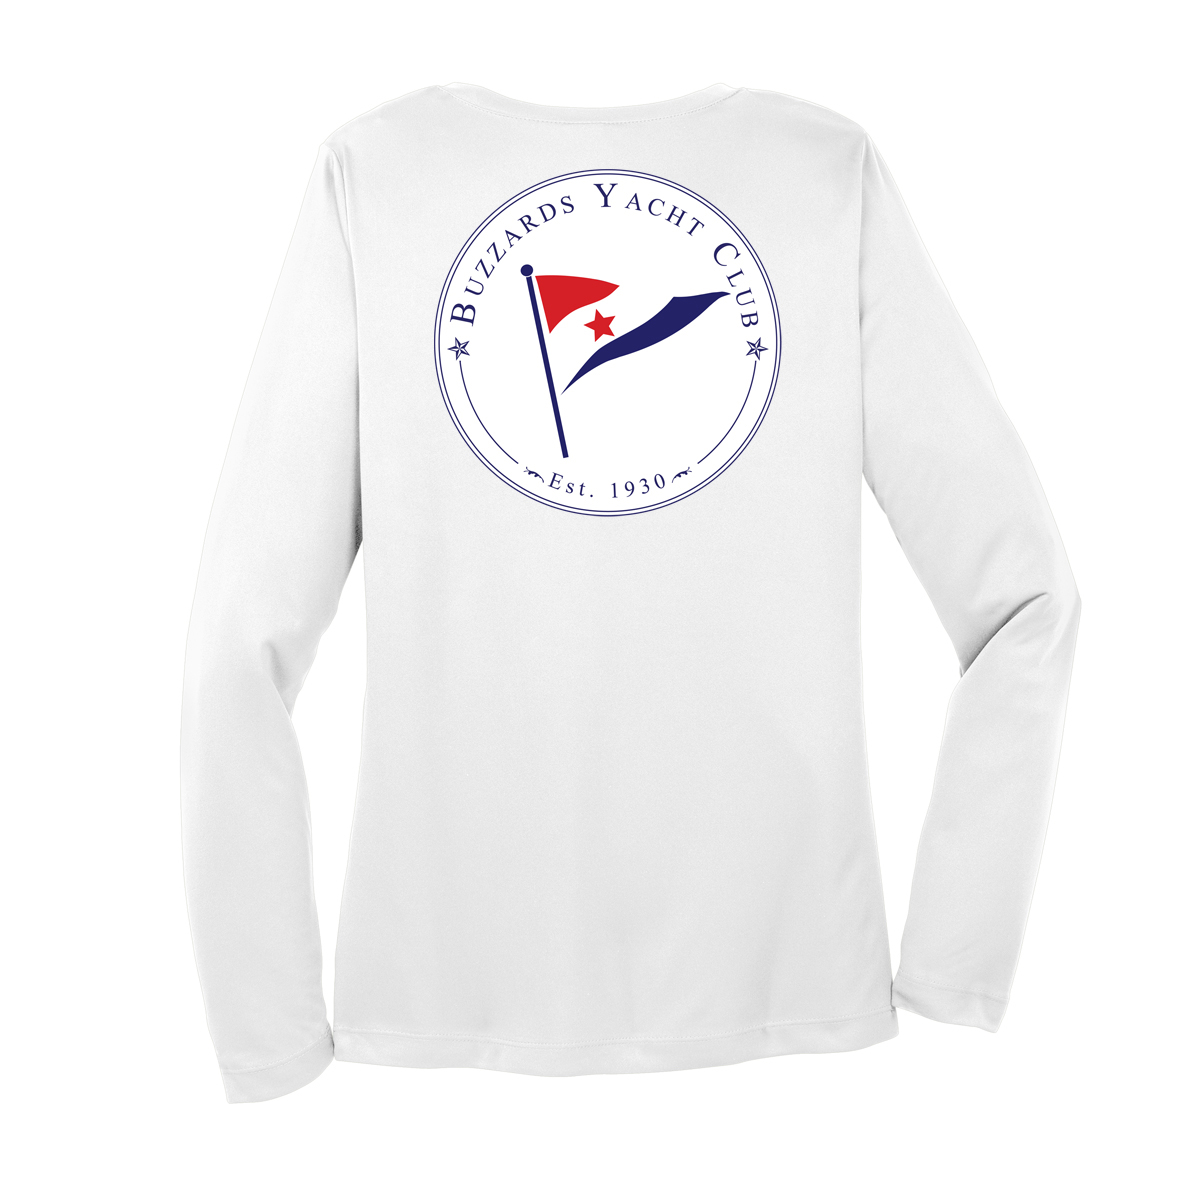 Buzzards Yacht Club - Women's Long Sleeve Junior Member V-Neck Cotton Neck (BUZ224)